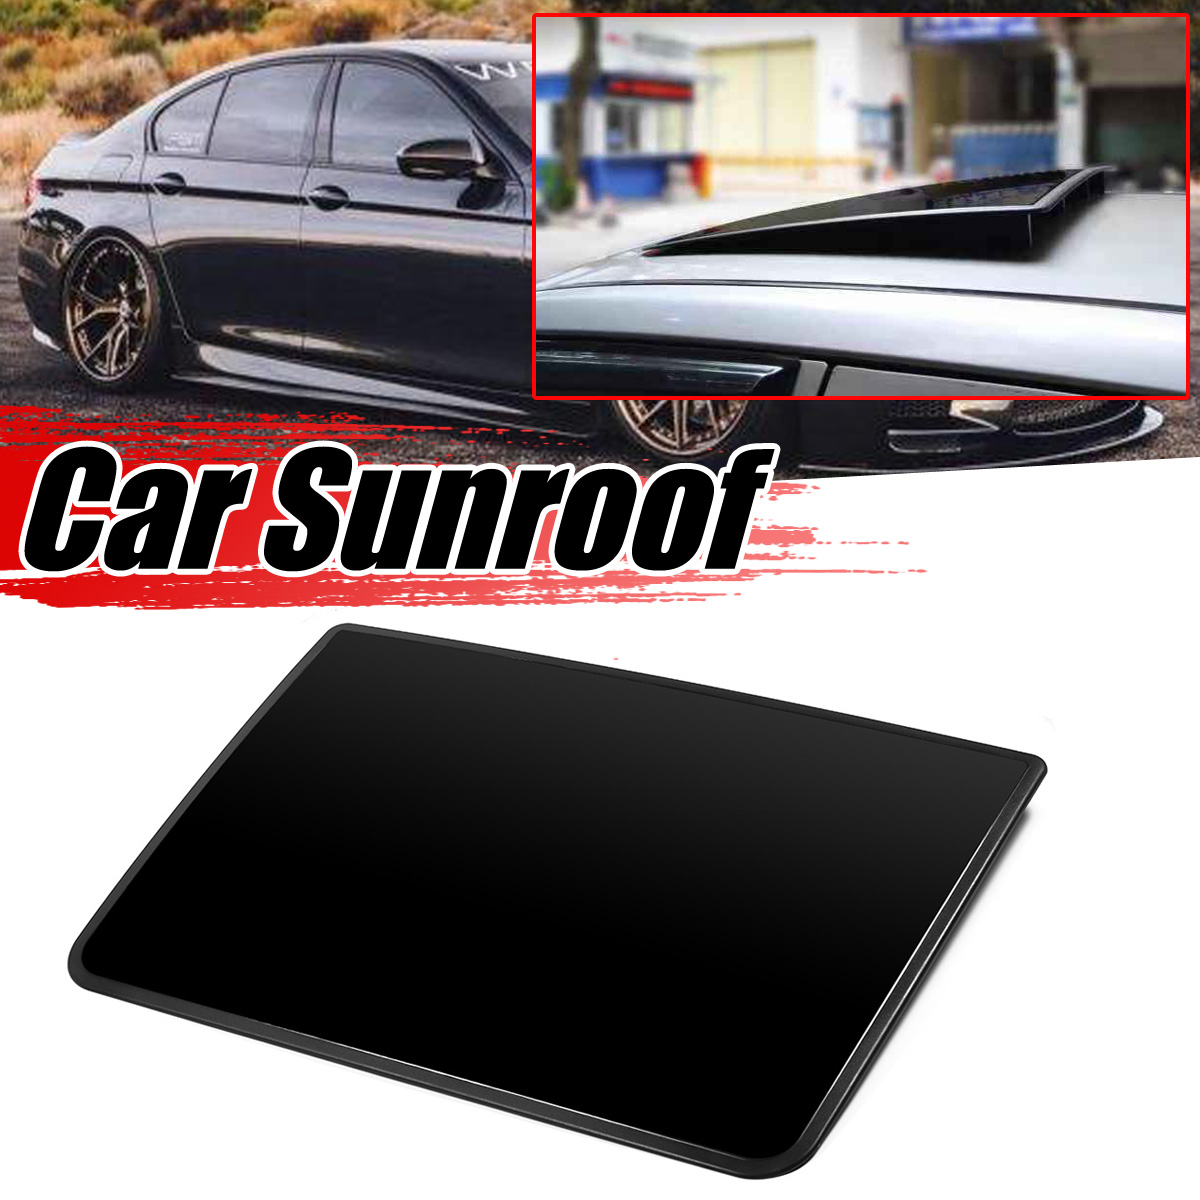 Universal Car Sunroof Cover Imitation Sunroof Roof Sunroof DIY Decoration For Benz For BMW For Audi For Honda For Mazad